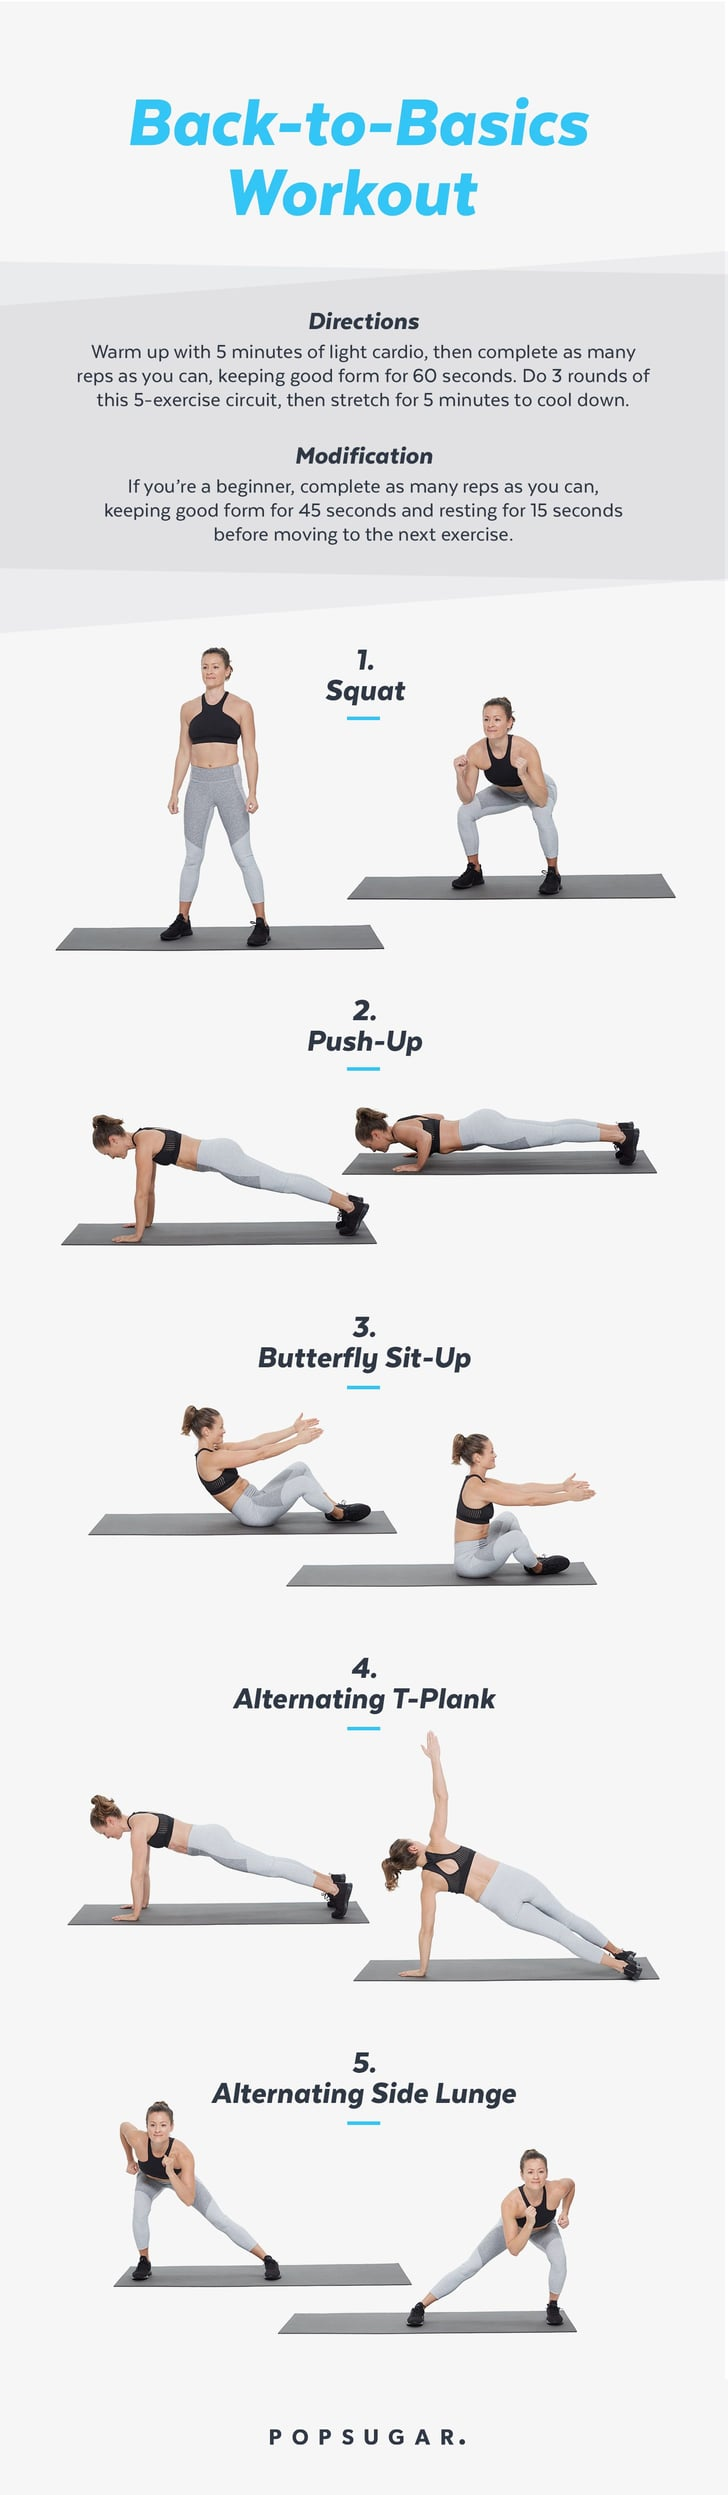 image relating to Printable Workouts Pdf titled Printable Workout routines POPSUGAR Physical fitness